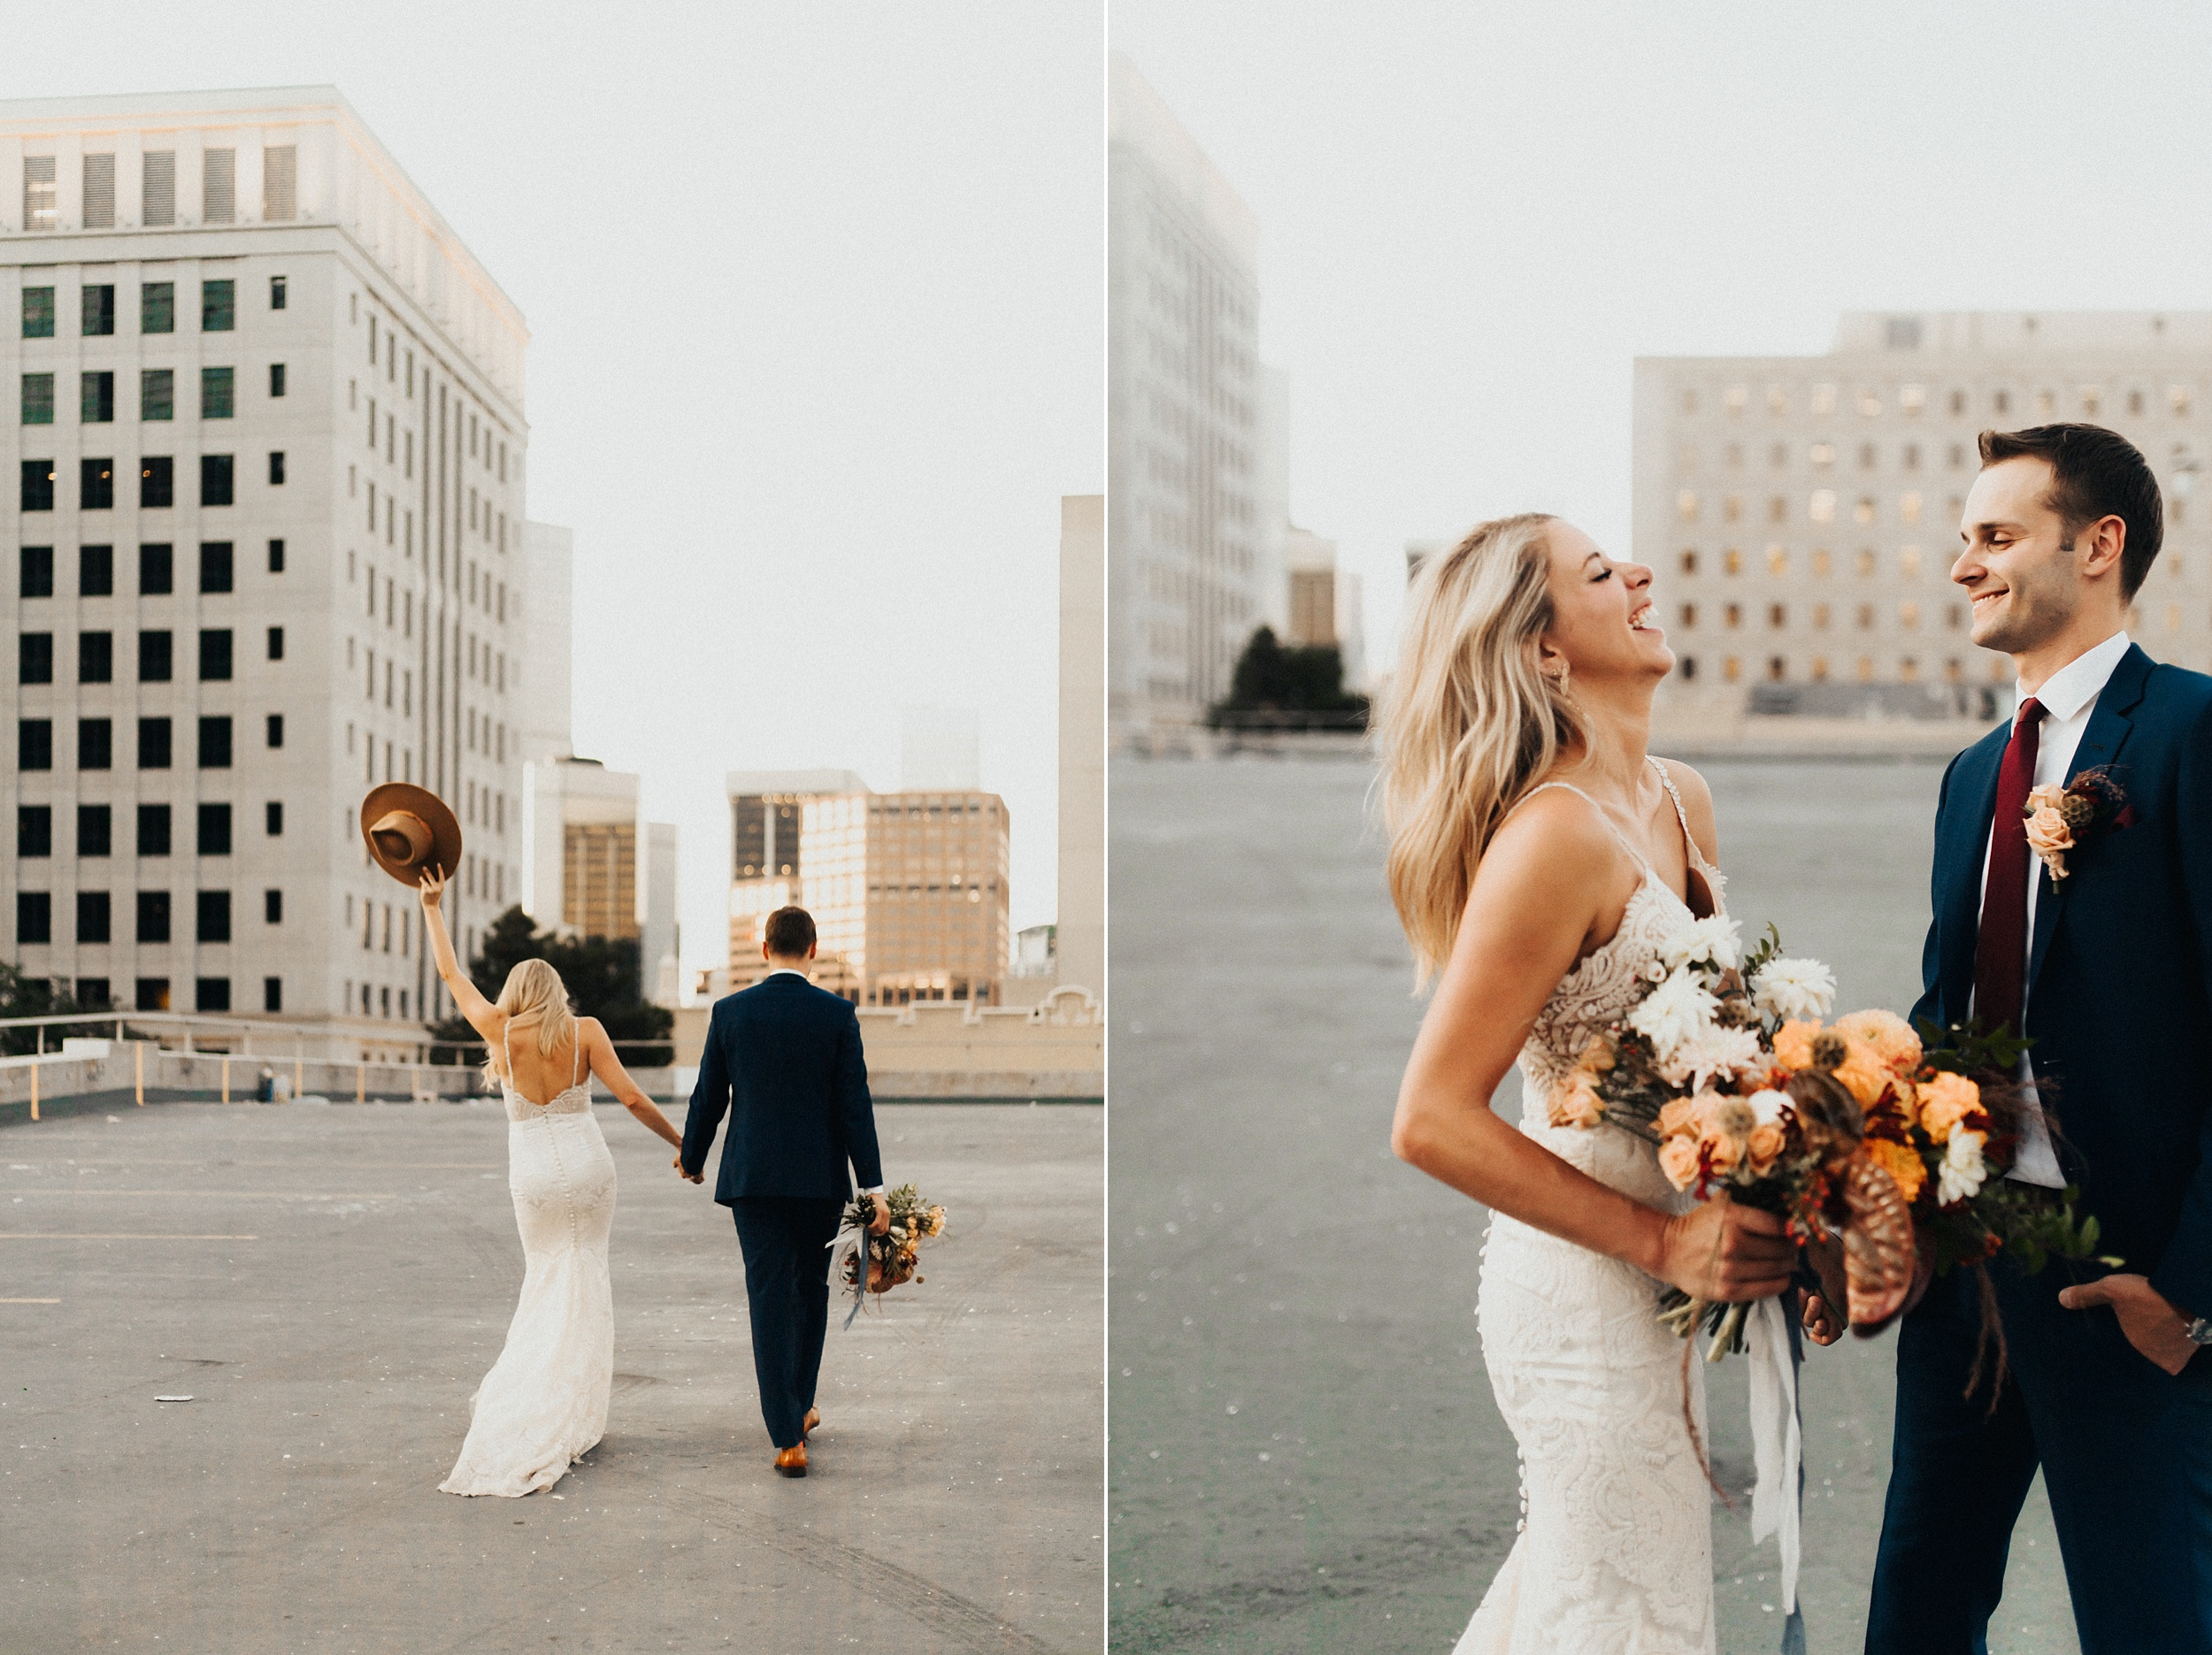 DowntownDenver_Colorado_Elopement_Anniversary_Session_Urban_Edit-36.jpg